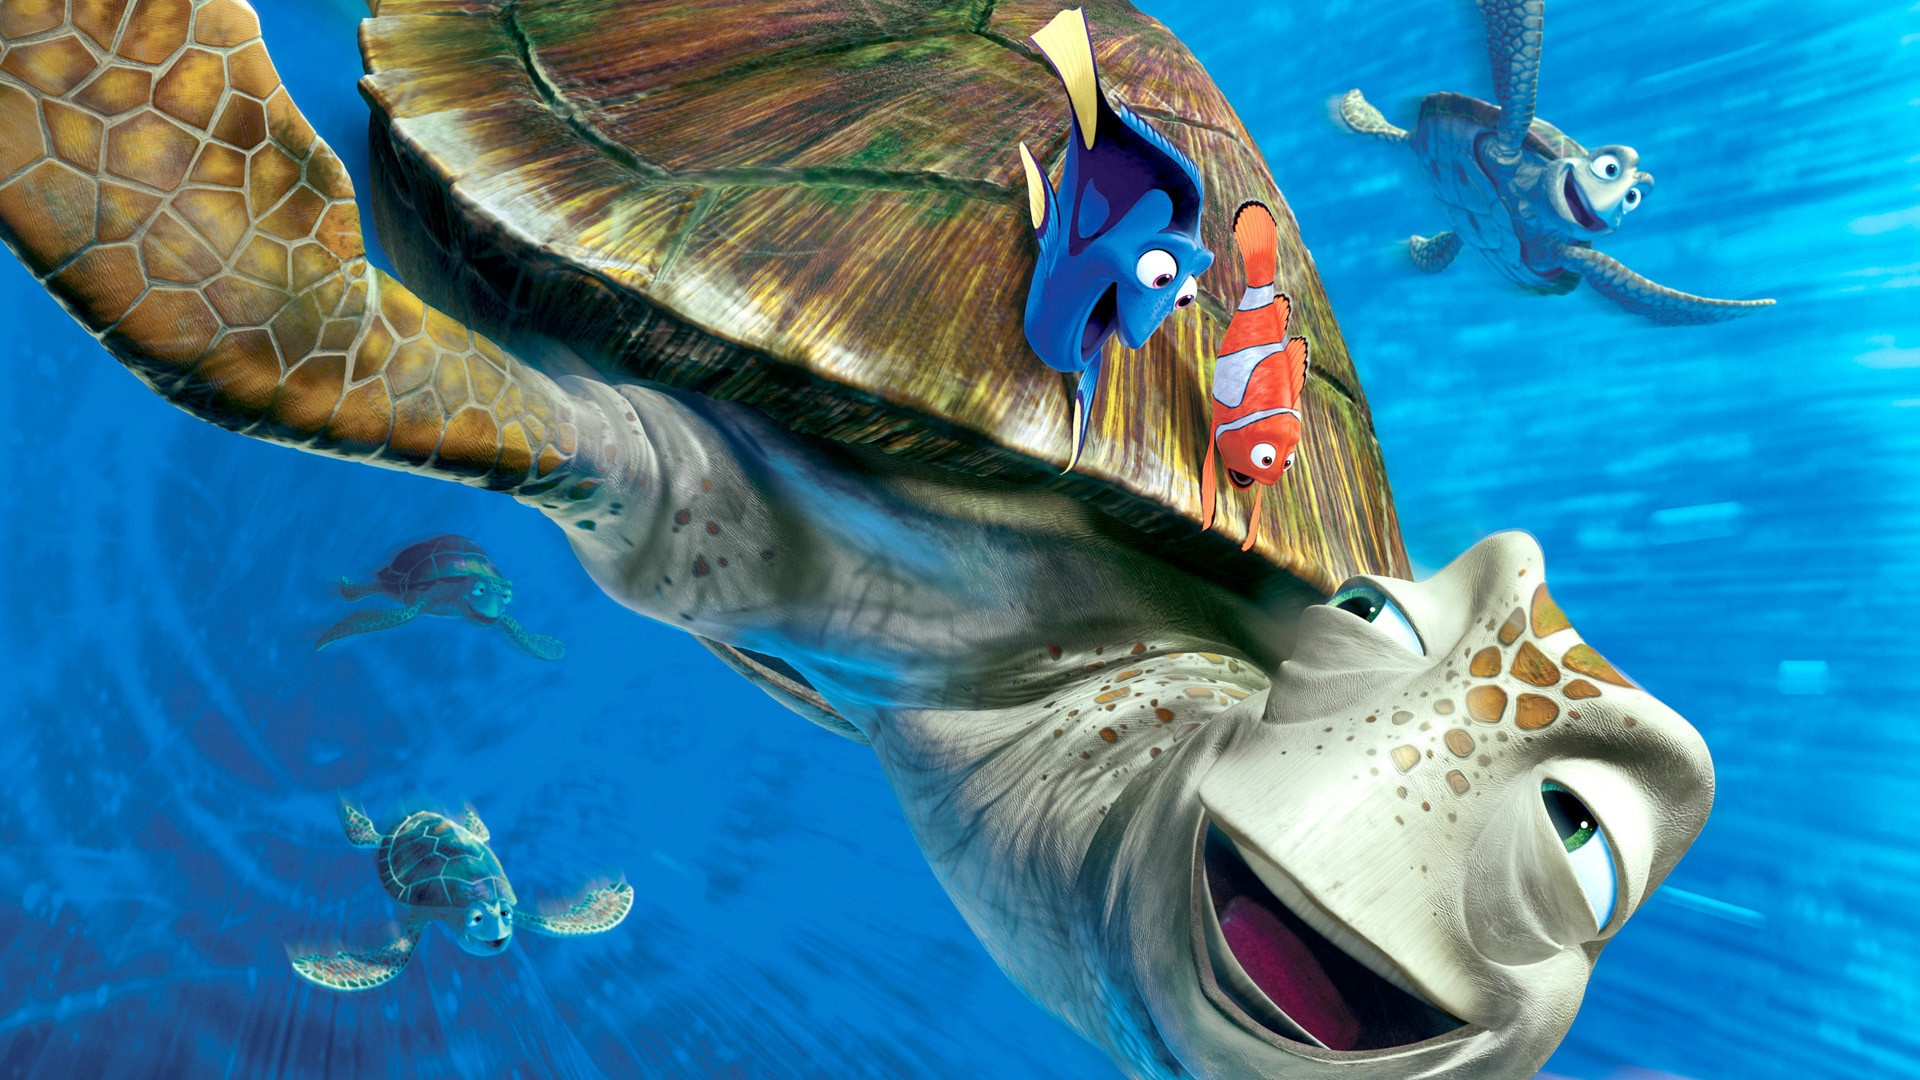 wallpaper finding nemo 1920x1080 full hd picture, image